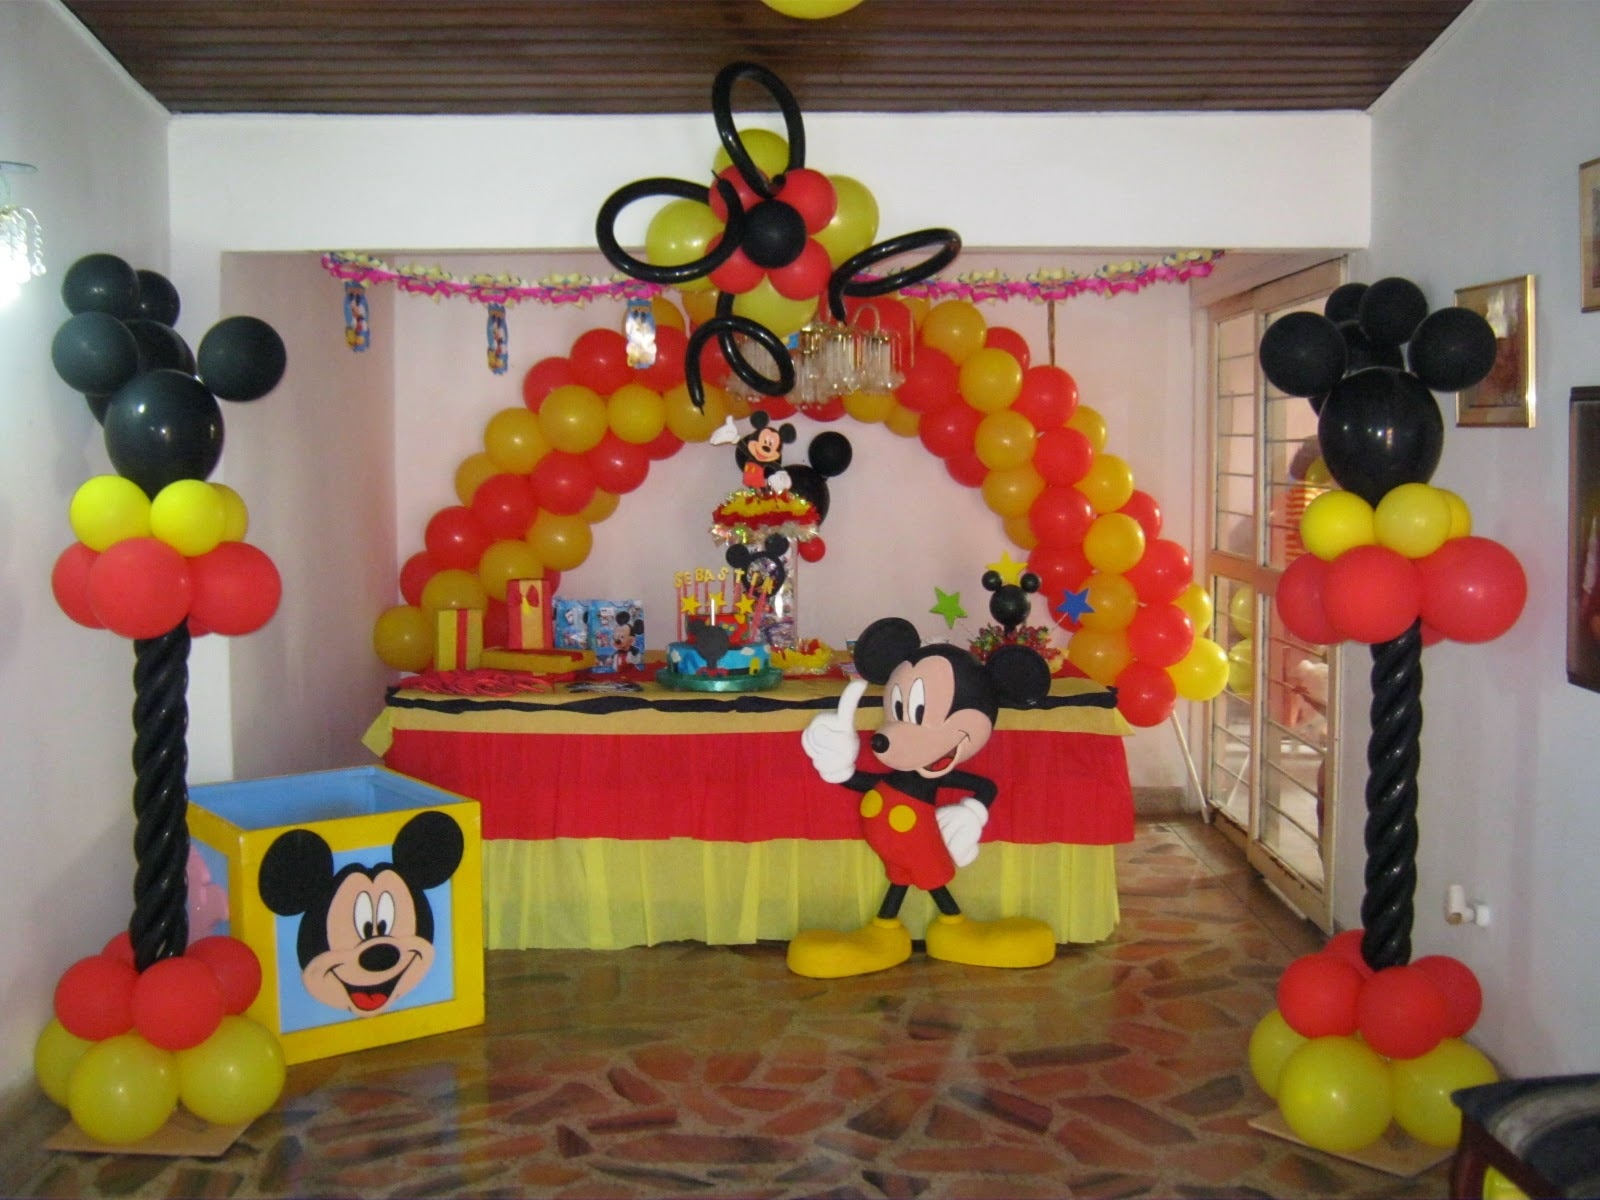 Decoracion sencilla de mickey mouse para cumplea os for Decoracion la casa de mickey mouse